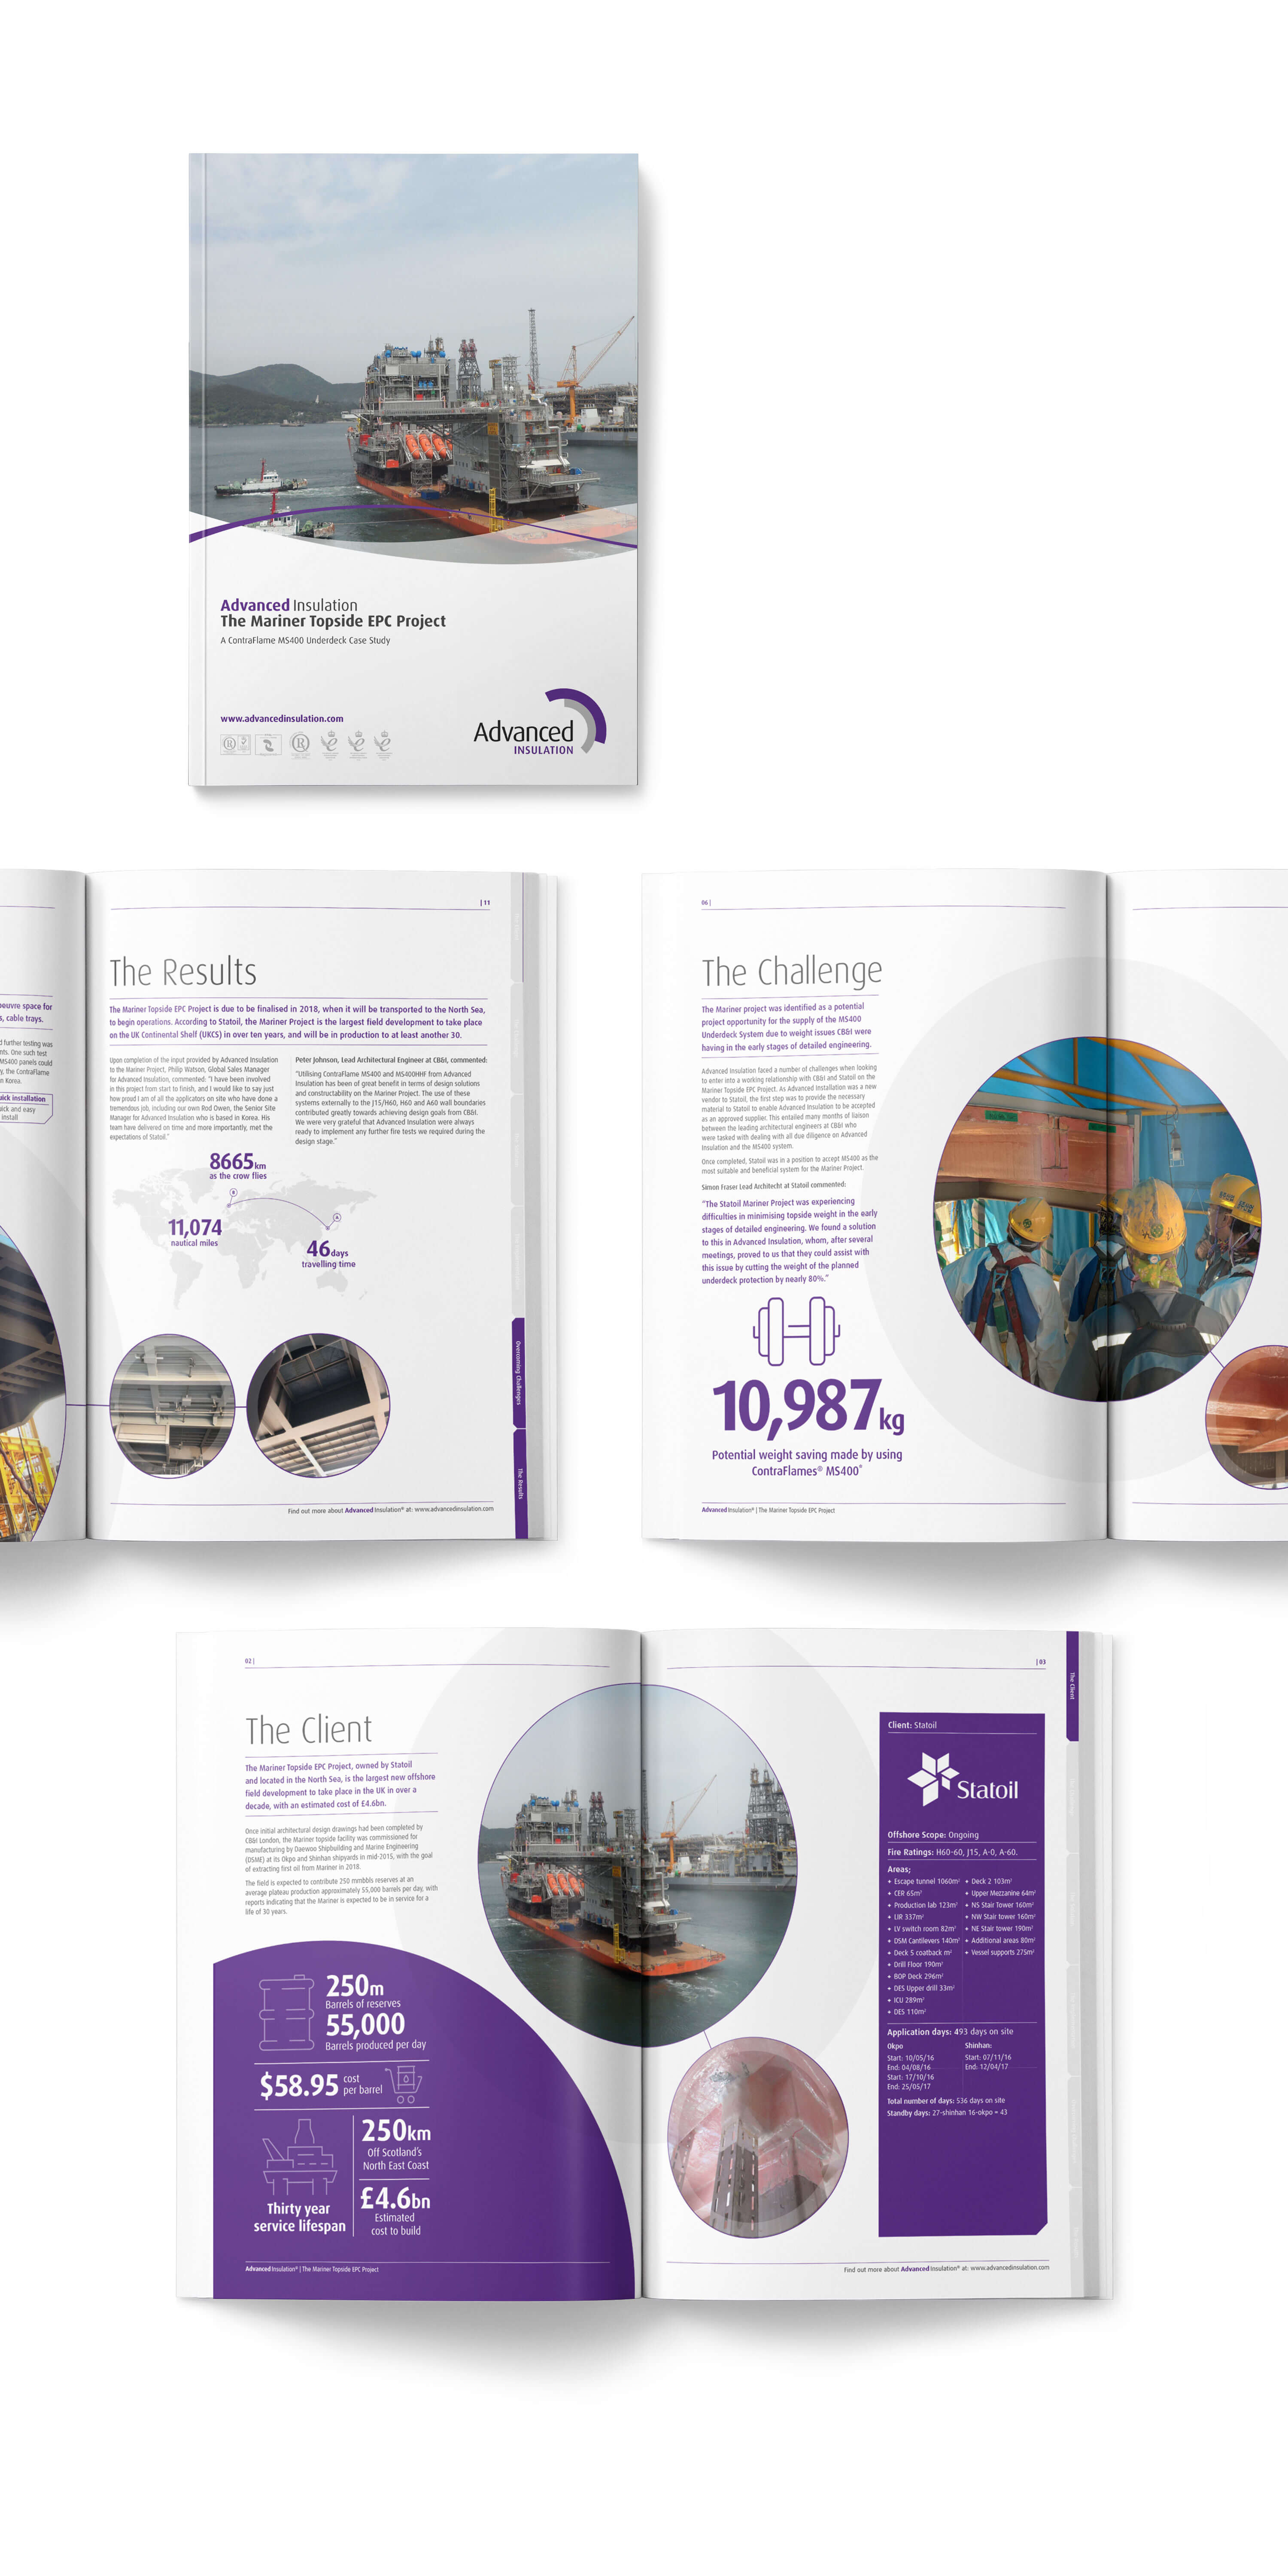 Brand consultation for Advanced Insulation by Mighty, design agency Cheltenham